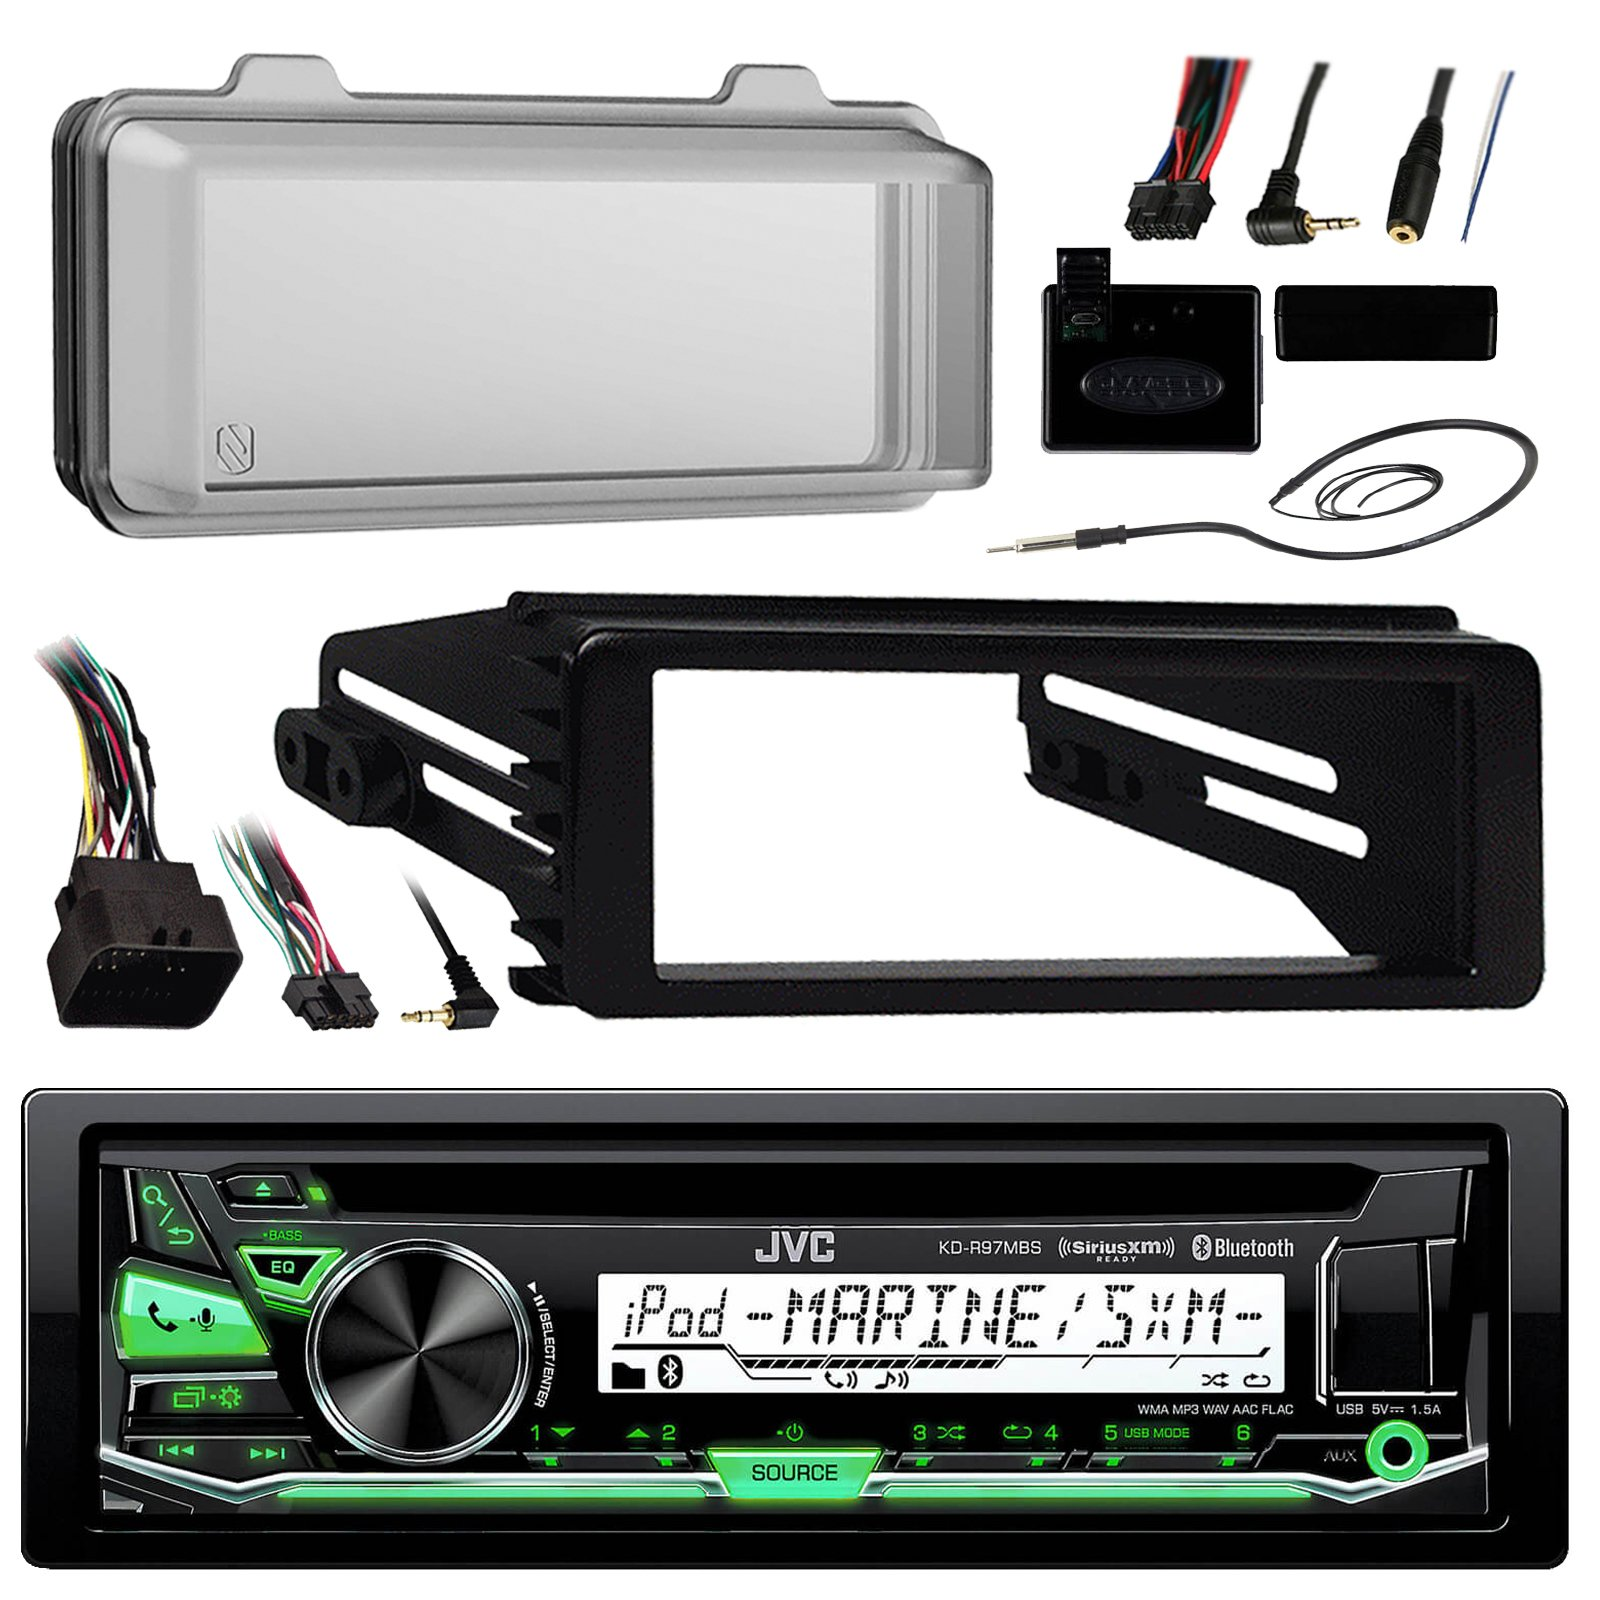 98-2013 JVC Harley Touring ATV Install Adapter Dash Kit FLHT CD MP3 AM/FM Radio Stereo With Bluetooth FLHTC CD Dash FLHX With Enrock Marine Radio Antenna + Stereo Cover by EnrockMarineBundle